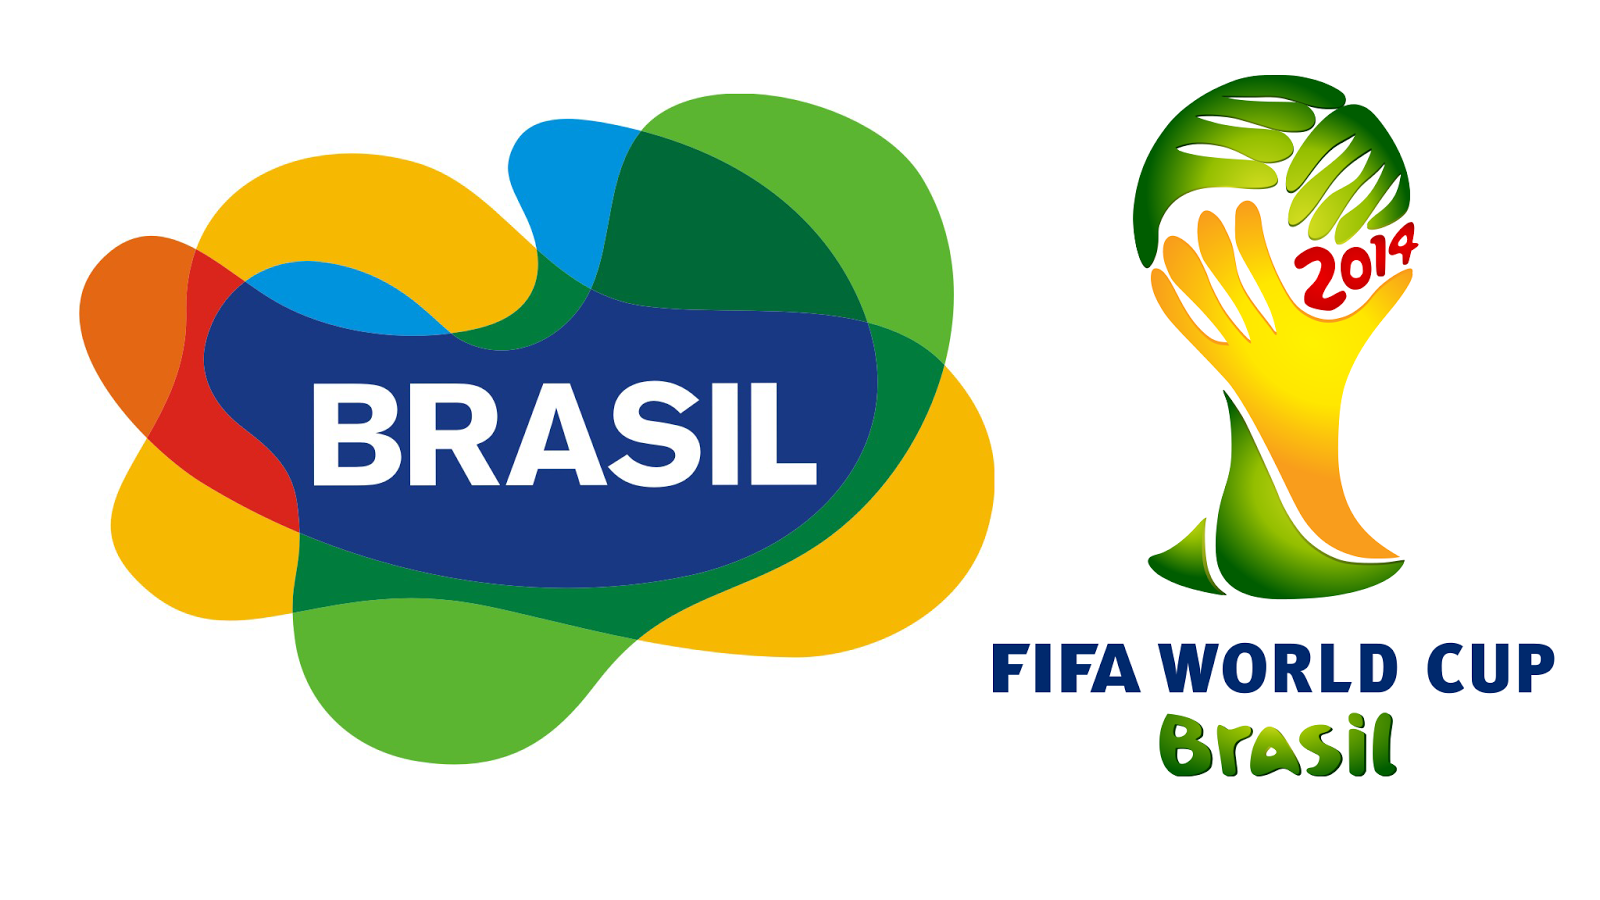 Football World Cup 2014 - Groups